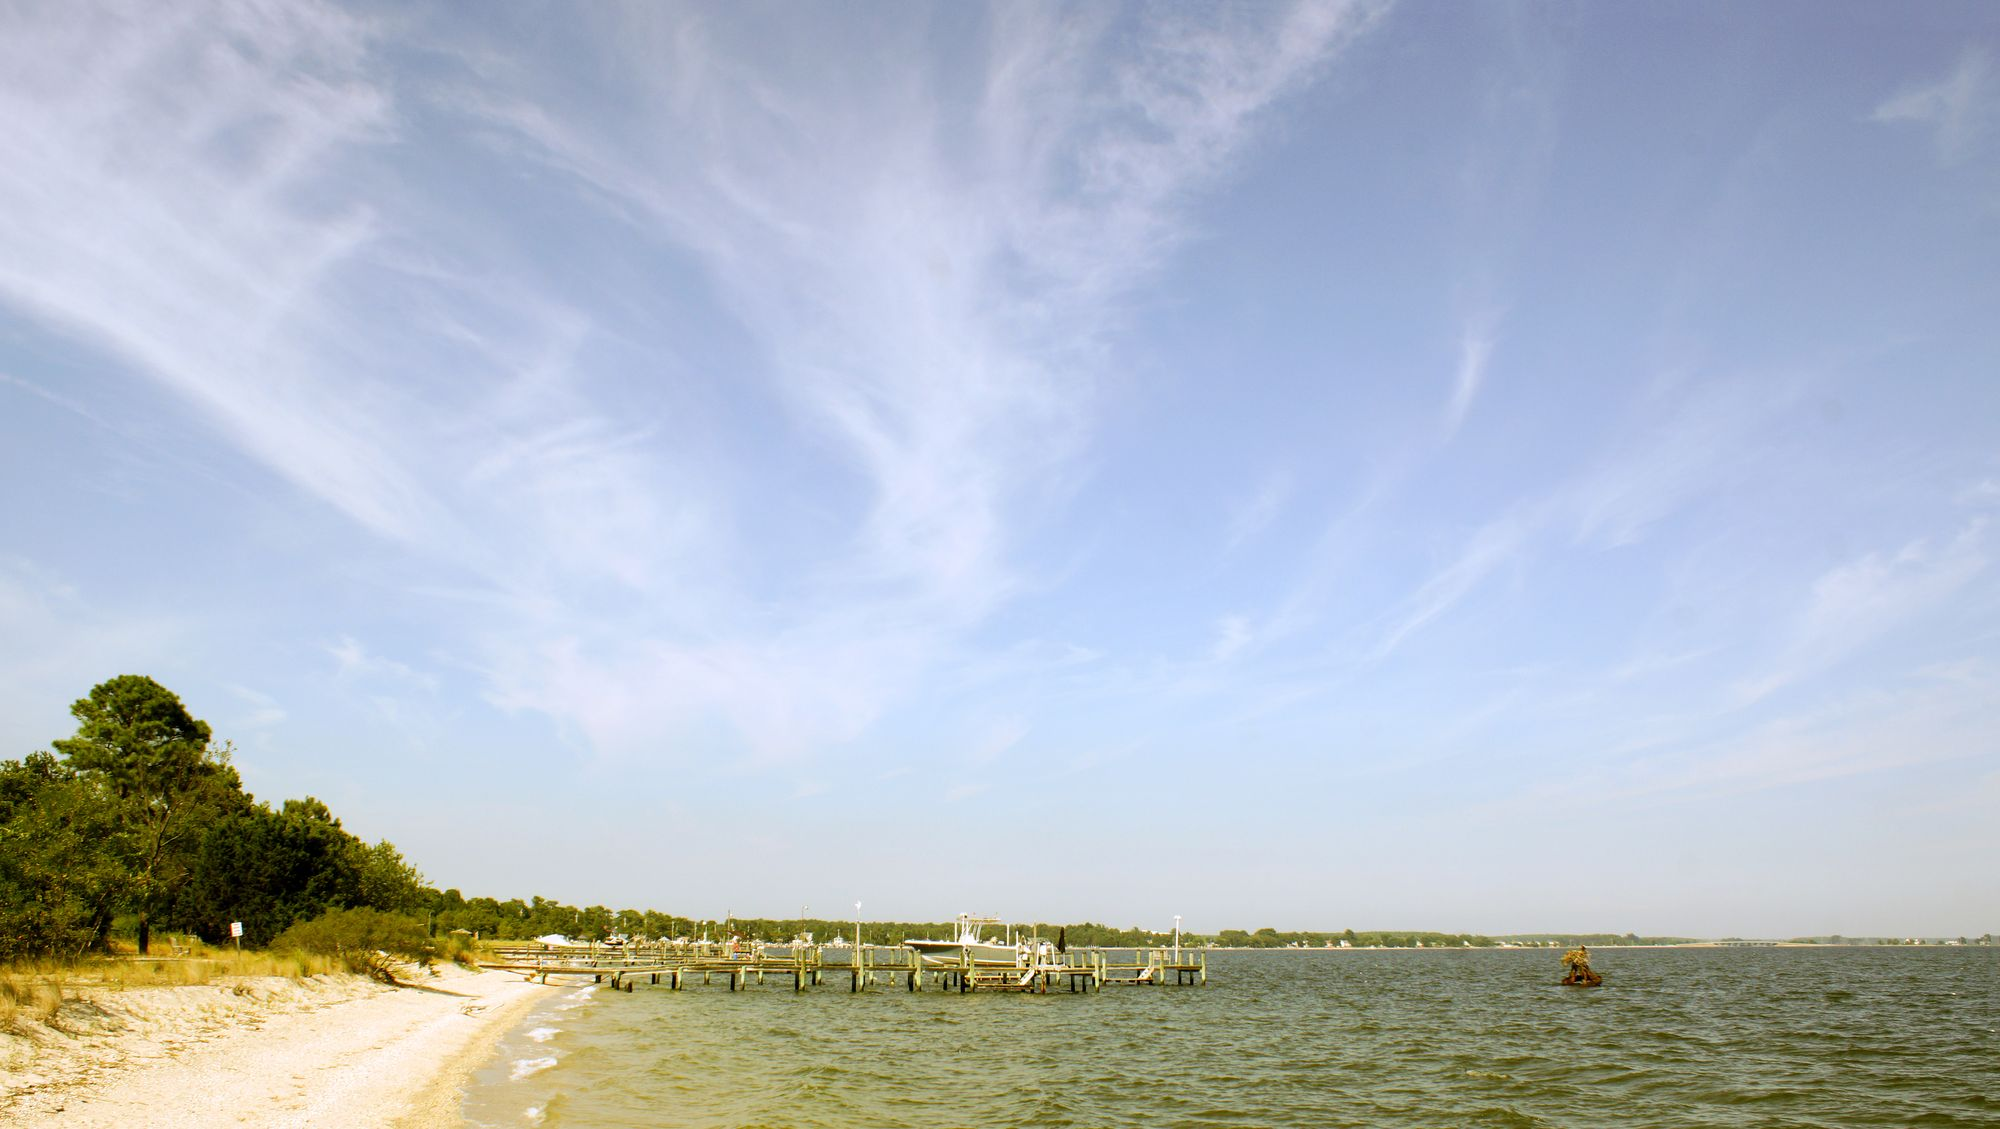 Florida: Piney Point Leak Raises Environmental Concerns, $200 million to Clean Up